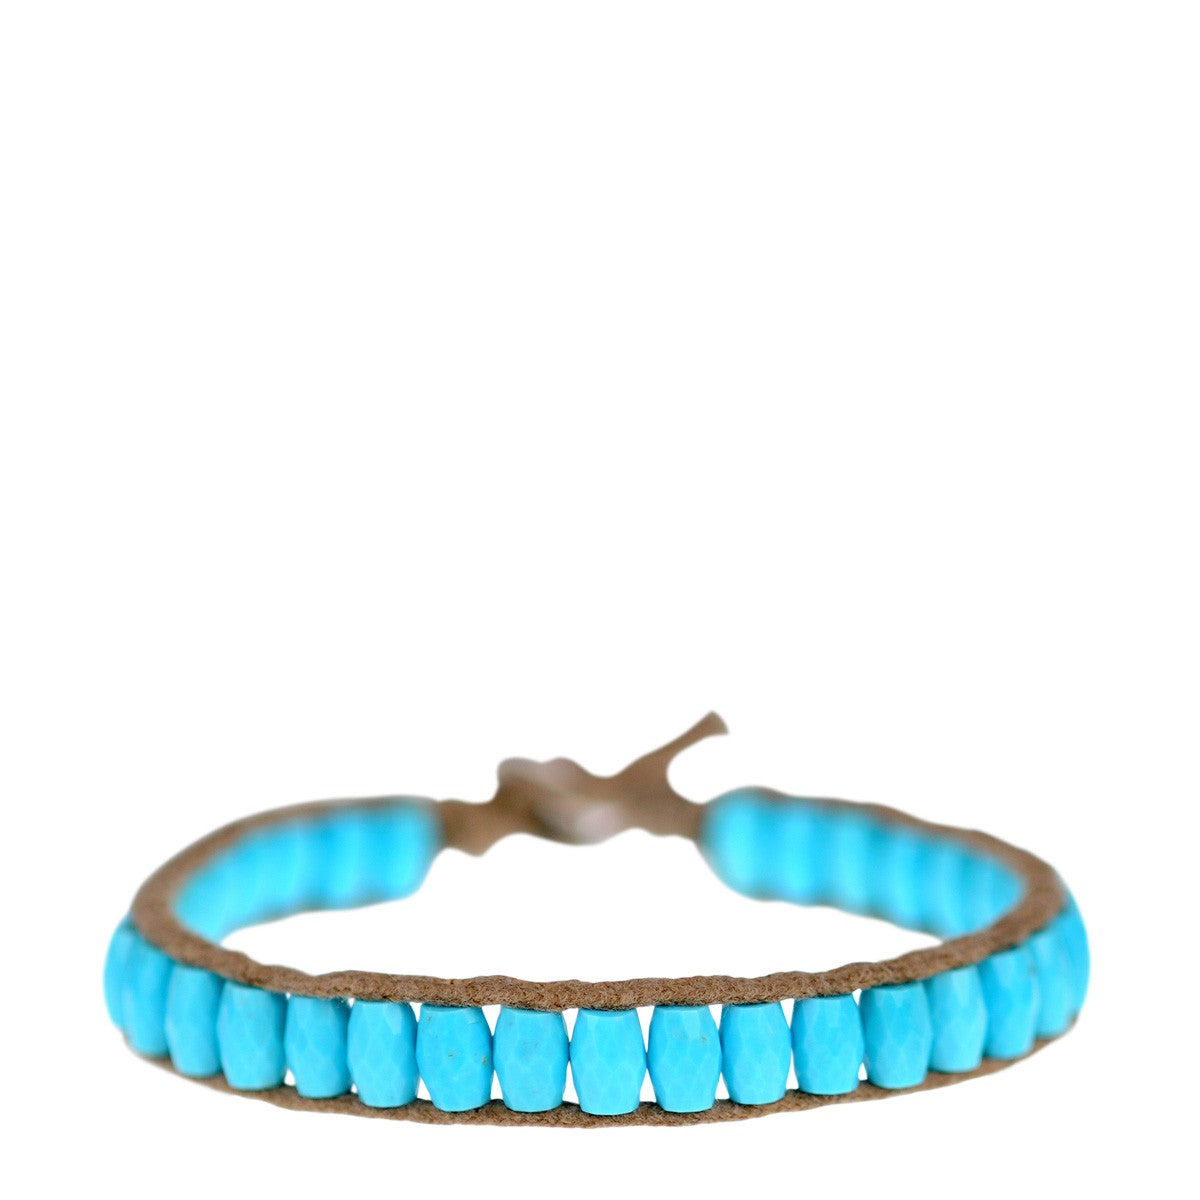 Sterling Silver Single Wrap Turquoise Barrel Bracelet on Natural Cord